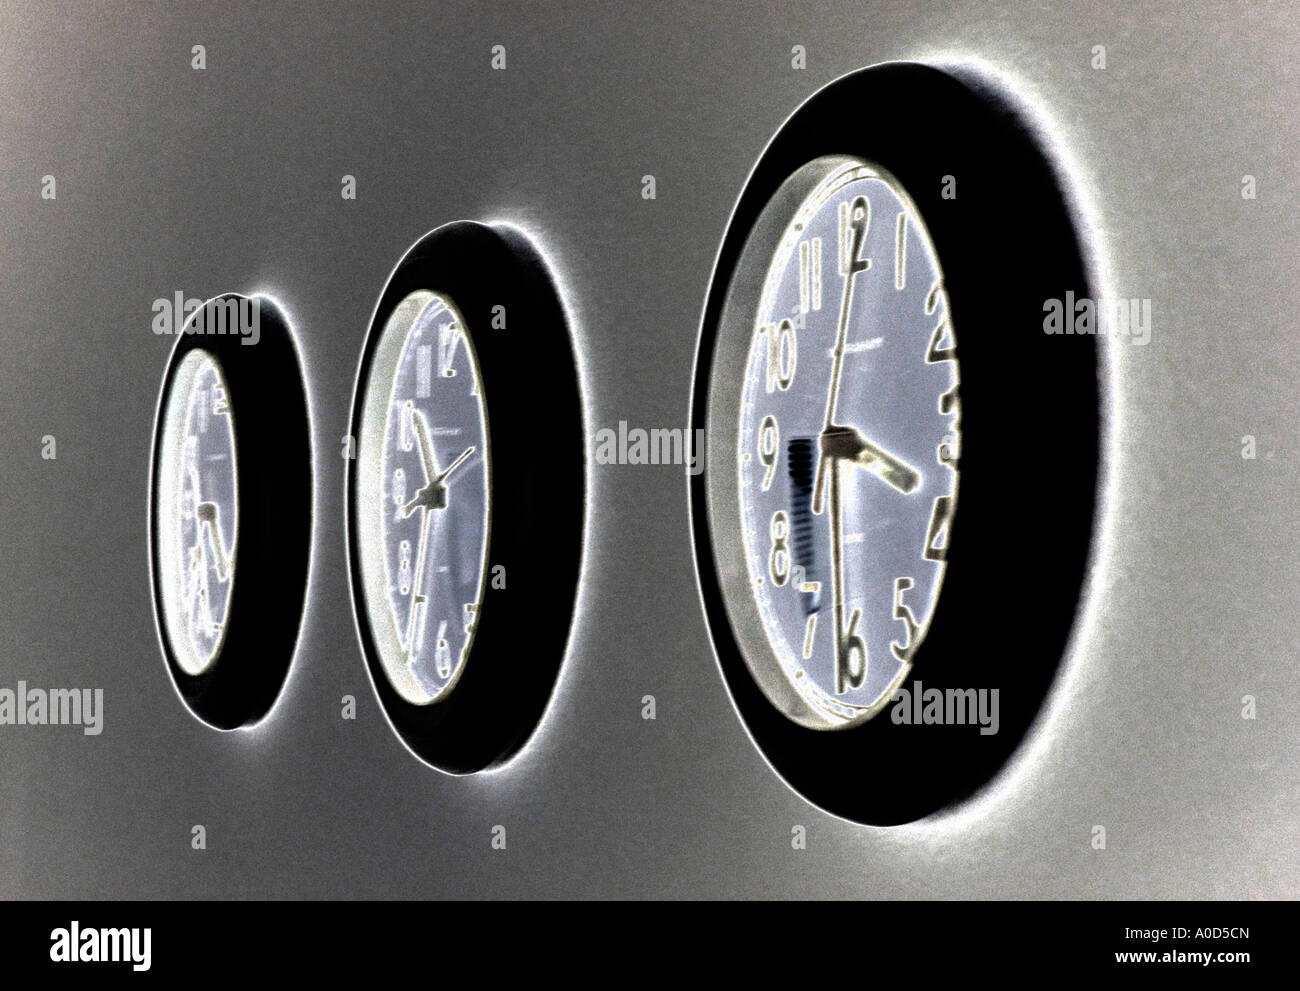 office wall clocks. Three Office Wall Clocks Set At Different Times L